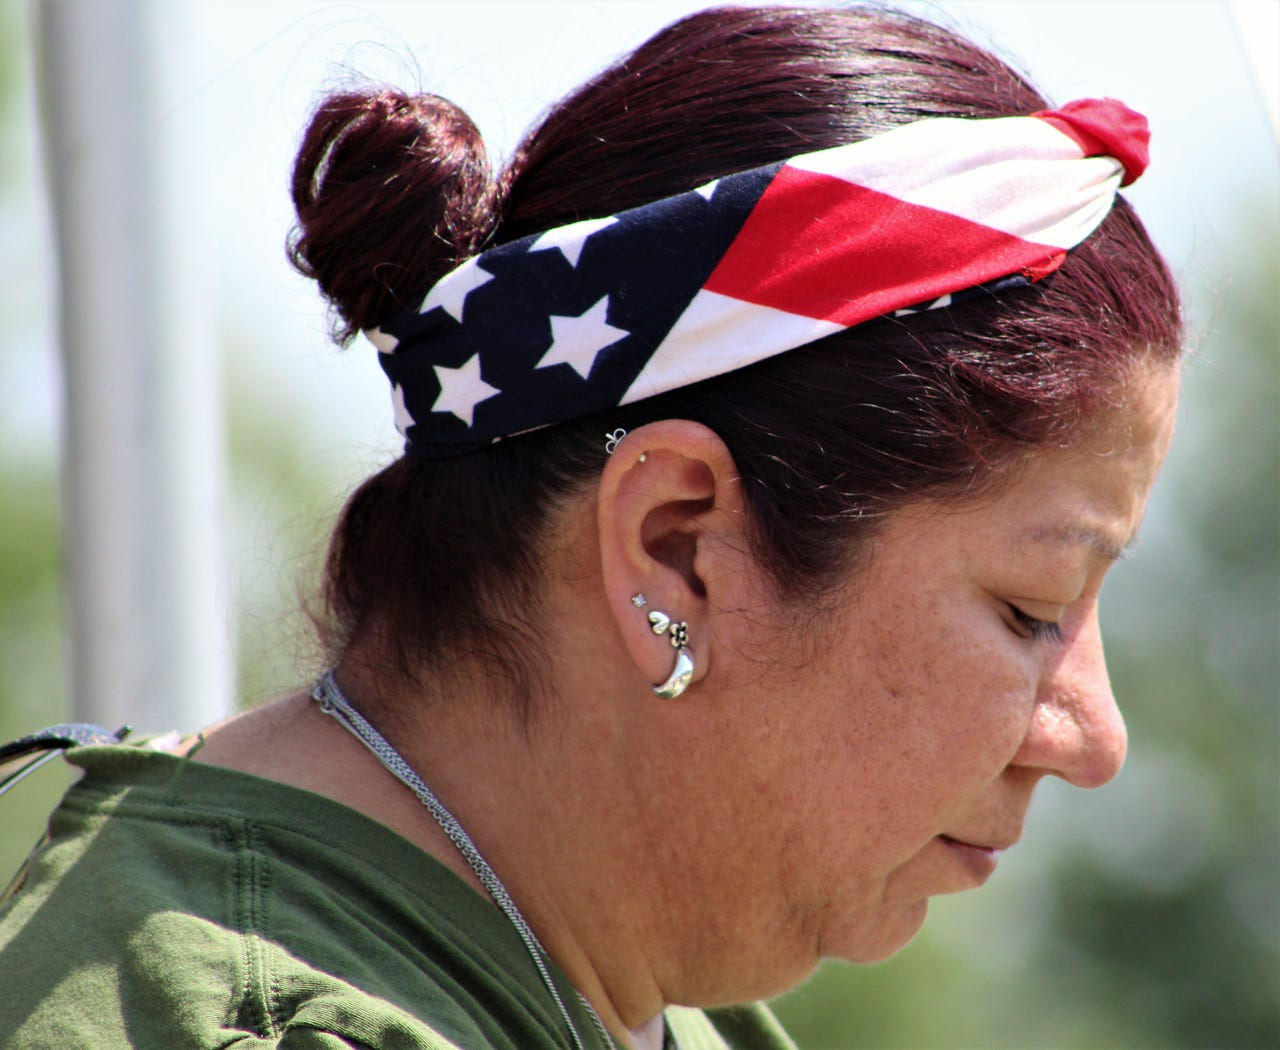 Celestina Garcia showed her patriotism by wearing a flag bandanna to Monday's Memorial Day ceremony at Texas State Veterans Cemetery at Abilene. Her father, Raul Garcia, served in the Air Force and was interred at the cemetery in 2017, she said. May 27, 2019